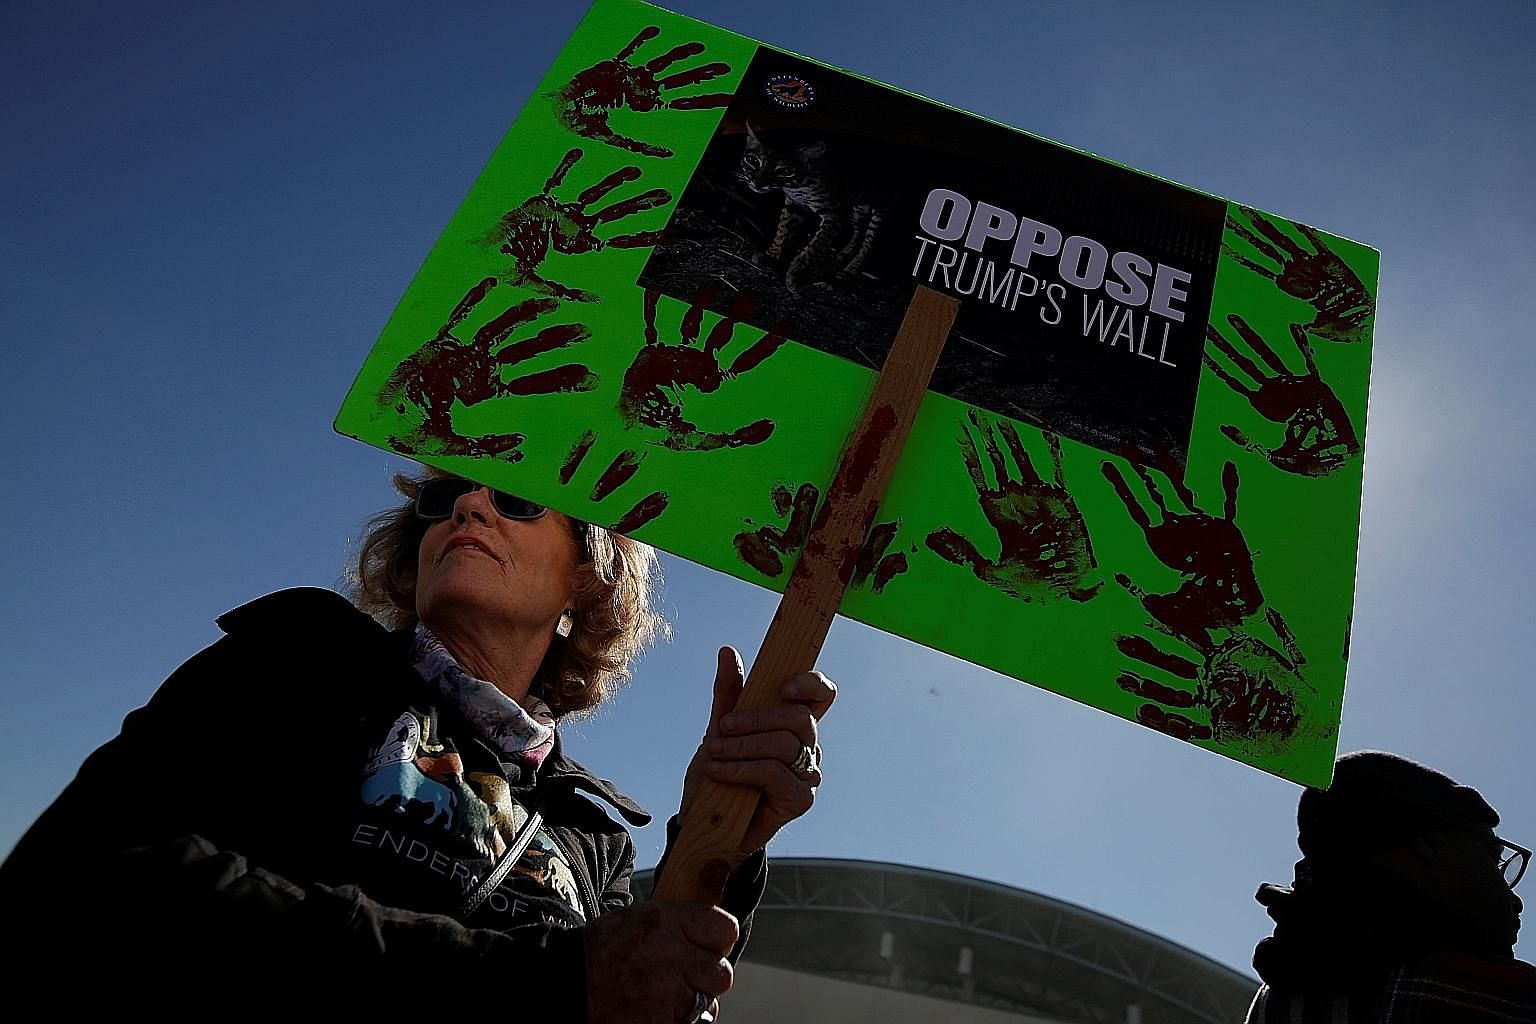 A protester with an anti-wall sign during a march by members of Border Network for Human Rights in El Paso, Texas, on Saturday. Today, relatively few land borders exist to physically fend off a neighbouring power, says the writer. Modern borders exis